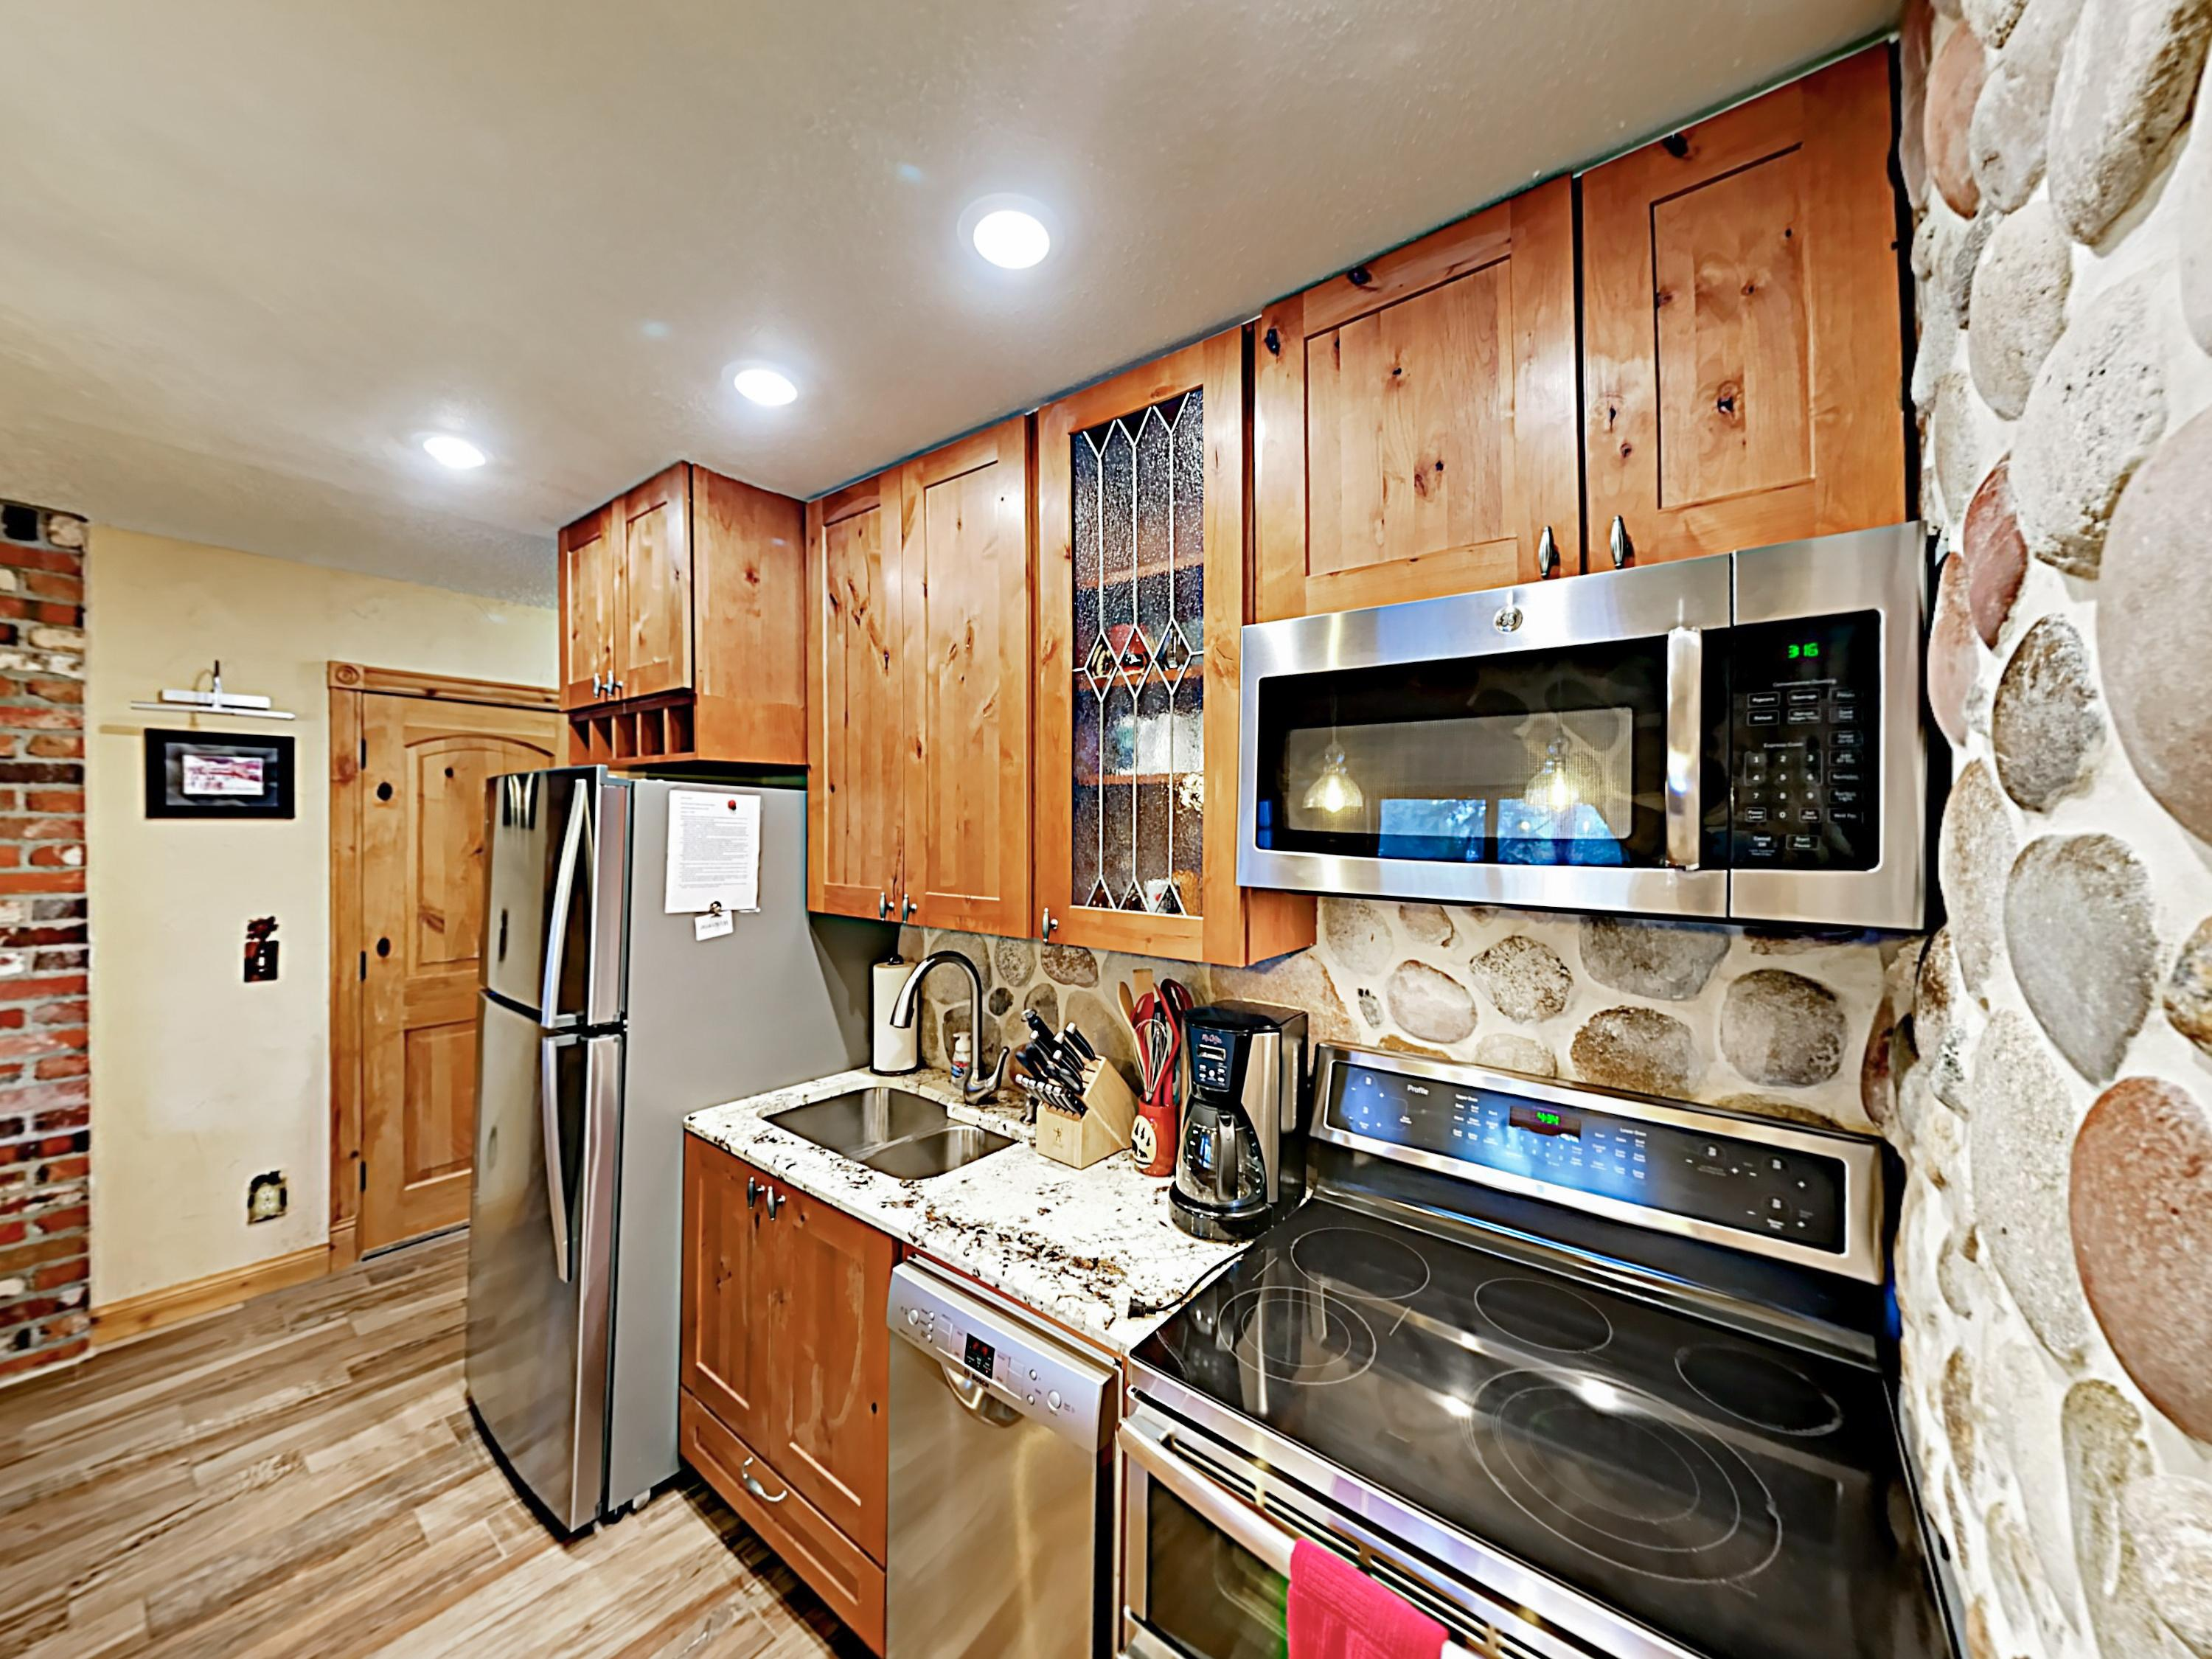 Stainless steel appliances and wood cabinets highlight the kitchen.